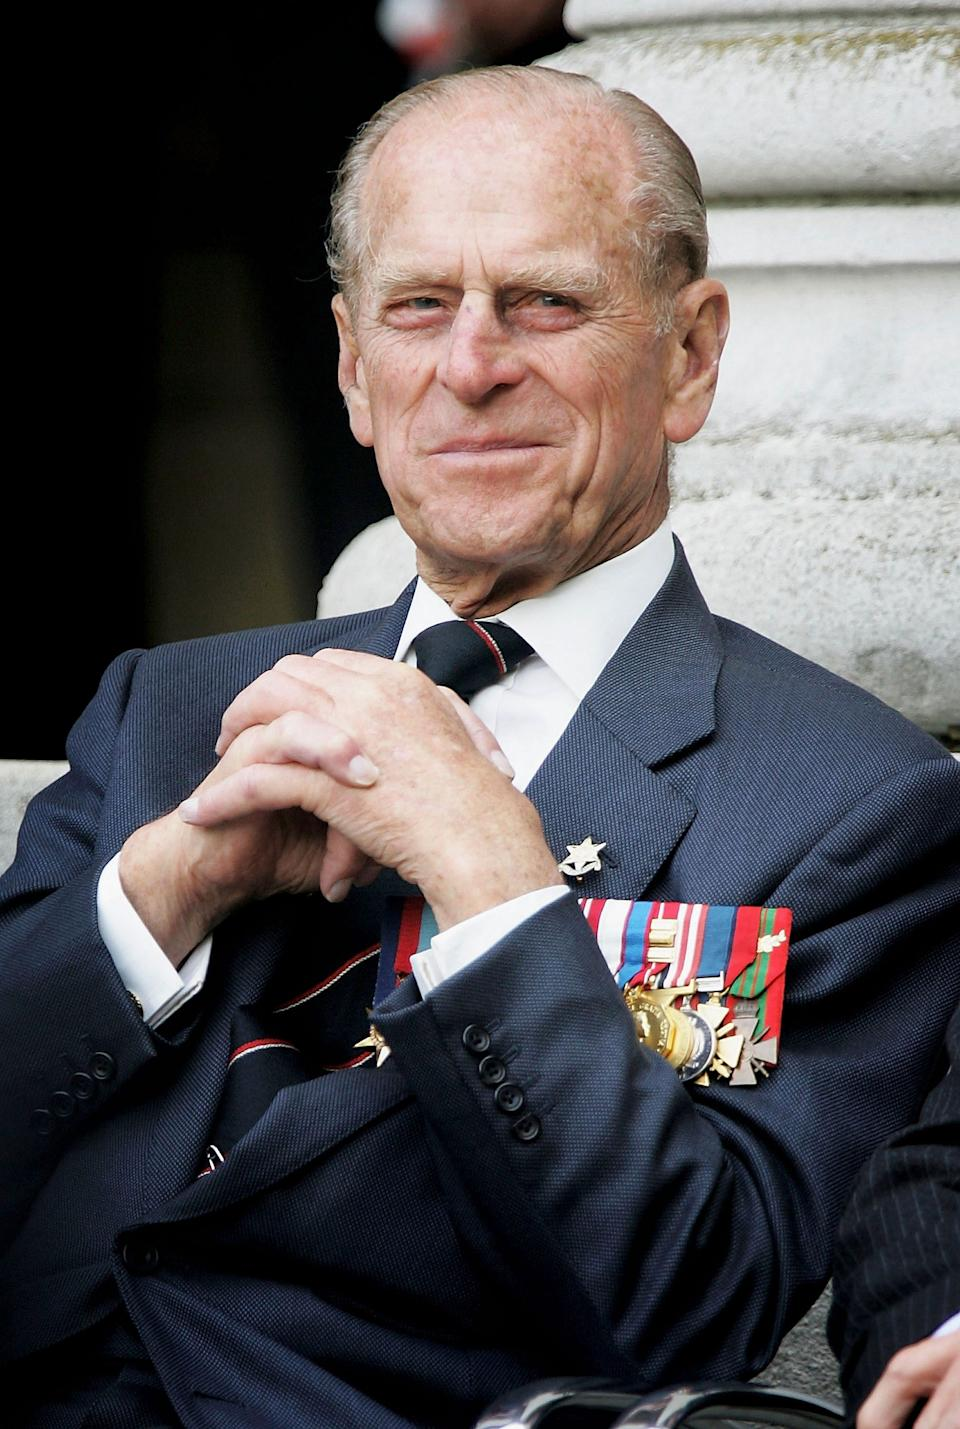 The Duke of Edinburgh pictured at the Imperial War Museum on August 15, 2005 in London, England. (Photo: Chris Jackson/Getty Images)